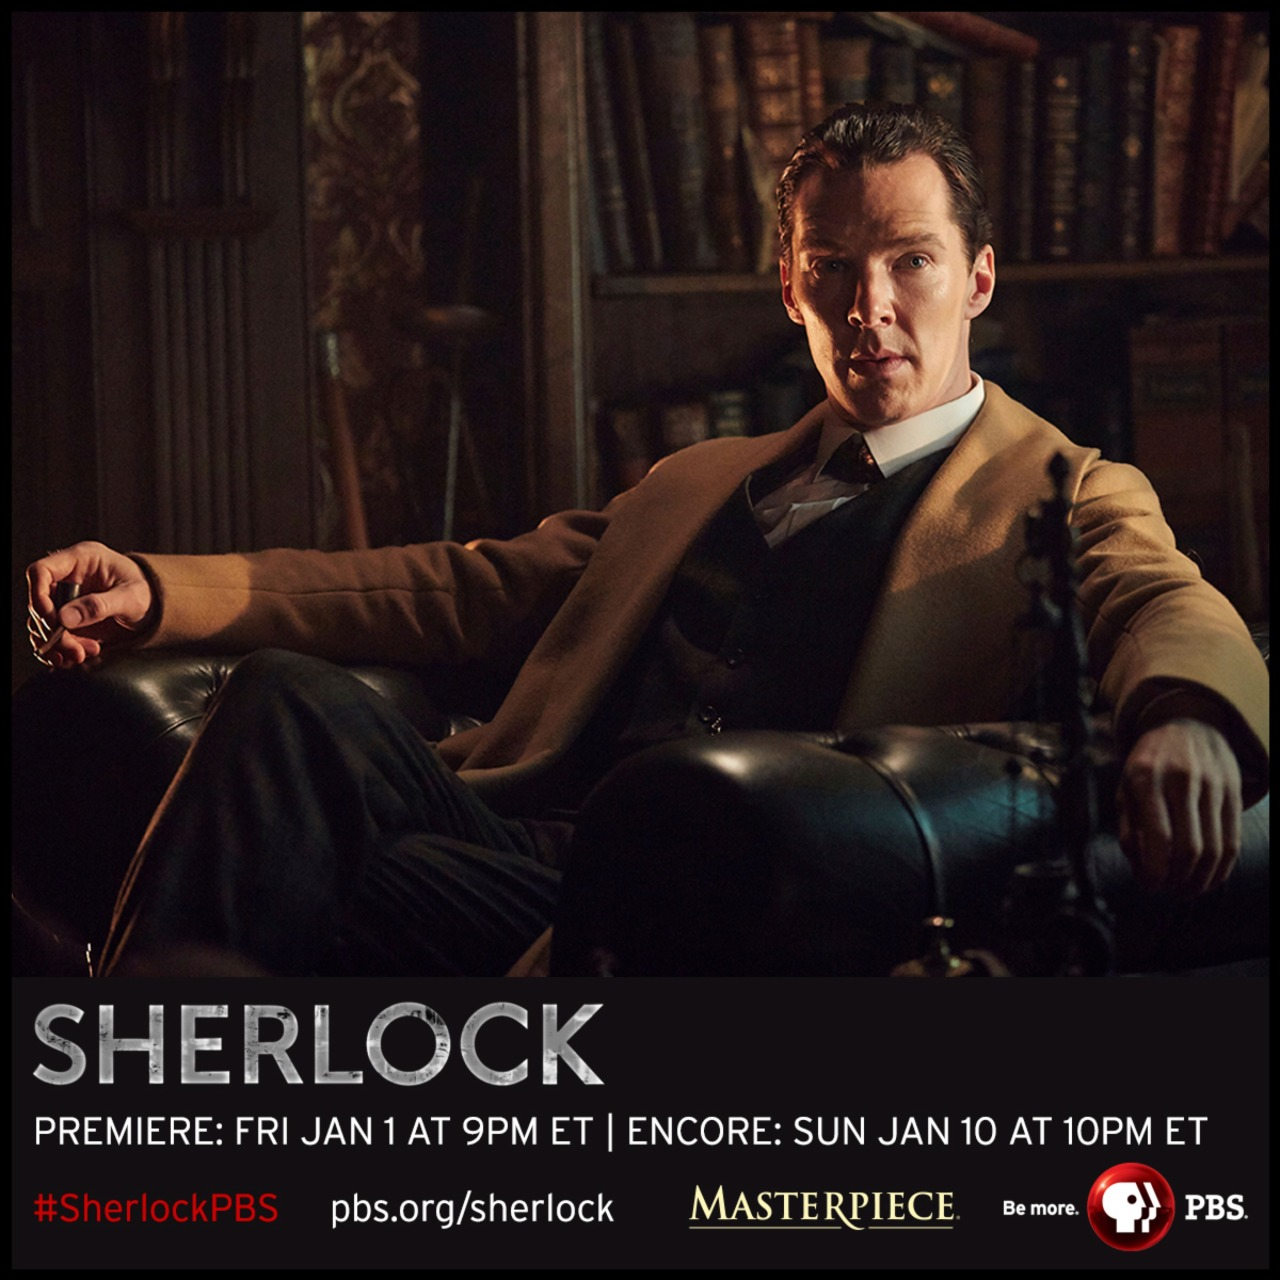 pbstv:  As Thanksgiving draws near we're thankful for these NEW Sherlock photos!   Get a closer look at the upcoming special – portraits, behind-the-scenes and more at PBS.org/Sherlock  xxhttp://www.denofgeek.com/tv/sherlock/37949/sherlock-benedict-cumberbatch-on-the-abominable-bride (full round table) Benedict Cumberbatch chats about taking his Sherlock Holmes back to the  Victorian era in the Sherlock Special, The Abominable Bride…Back in February of this year, details on the Sherlock  Christmas Special were thinner on the ground than incriminating  footprints after heavy rain. We had no title, trailer or synopsis for  the Victorian-set episode, just a single image of Benedict Cumberbatch  and Martin Freeman decked out in nineteenth-century clobber.Armed with only that, it was the task of a group of journalists  visiting the set to turn detective and find out what could be deduced  about the Special. Facing cast and creators well-used to the ducks and  dives of interviews able to reveal almost nothing, below are the results  of a rapid-fire interrogation of Benedict Cumberbatch…How did you respond when they said they wanted to do a Victorian Holmes?I was thrilled! I went, at last, I can have a fucking  haircut [laughter] I can slick it back and not have that ridiculous mop  of curls on my head. And then I went you're mad, what?The first pitch was quite light. It was at the end of the third  episode of the last season and I genuinely didn't understand how they  were going to get away with it. And then the more detailed pitch came  when they were talking about series four as well and I went, okay, this  is going to be great fun. And it really is.It's so nice to play him in his era. The things that are slightly  more heavy-lifting in the modern era in that there's a man clearly  slightly out of his time, it's put him back in the era that he's written  in originally, it's a joy. It feels easier to a degree. It's just  things that I tried to impose a little bit on our 